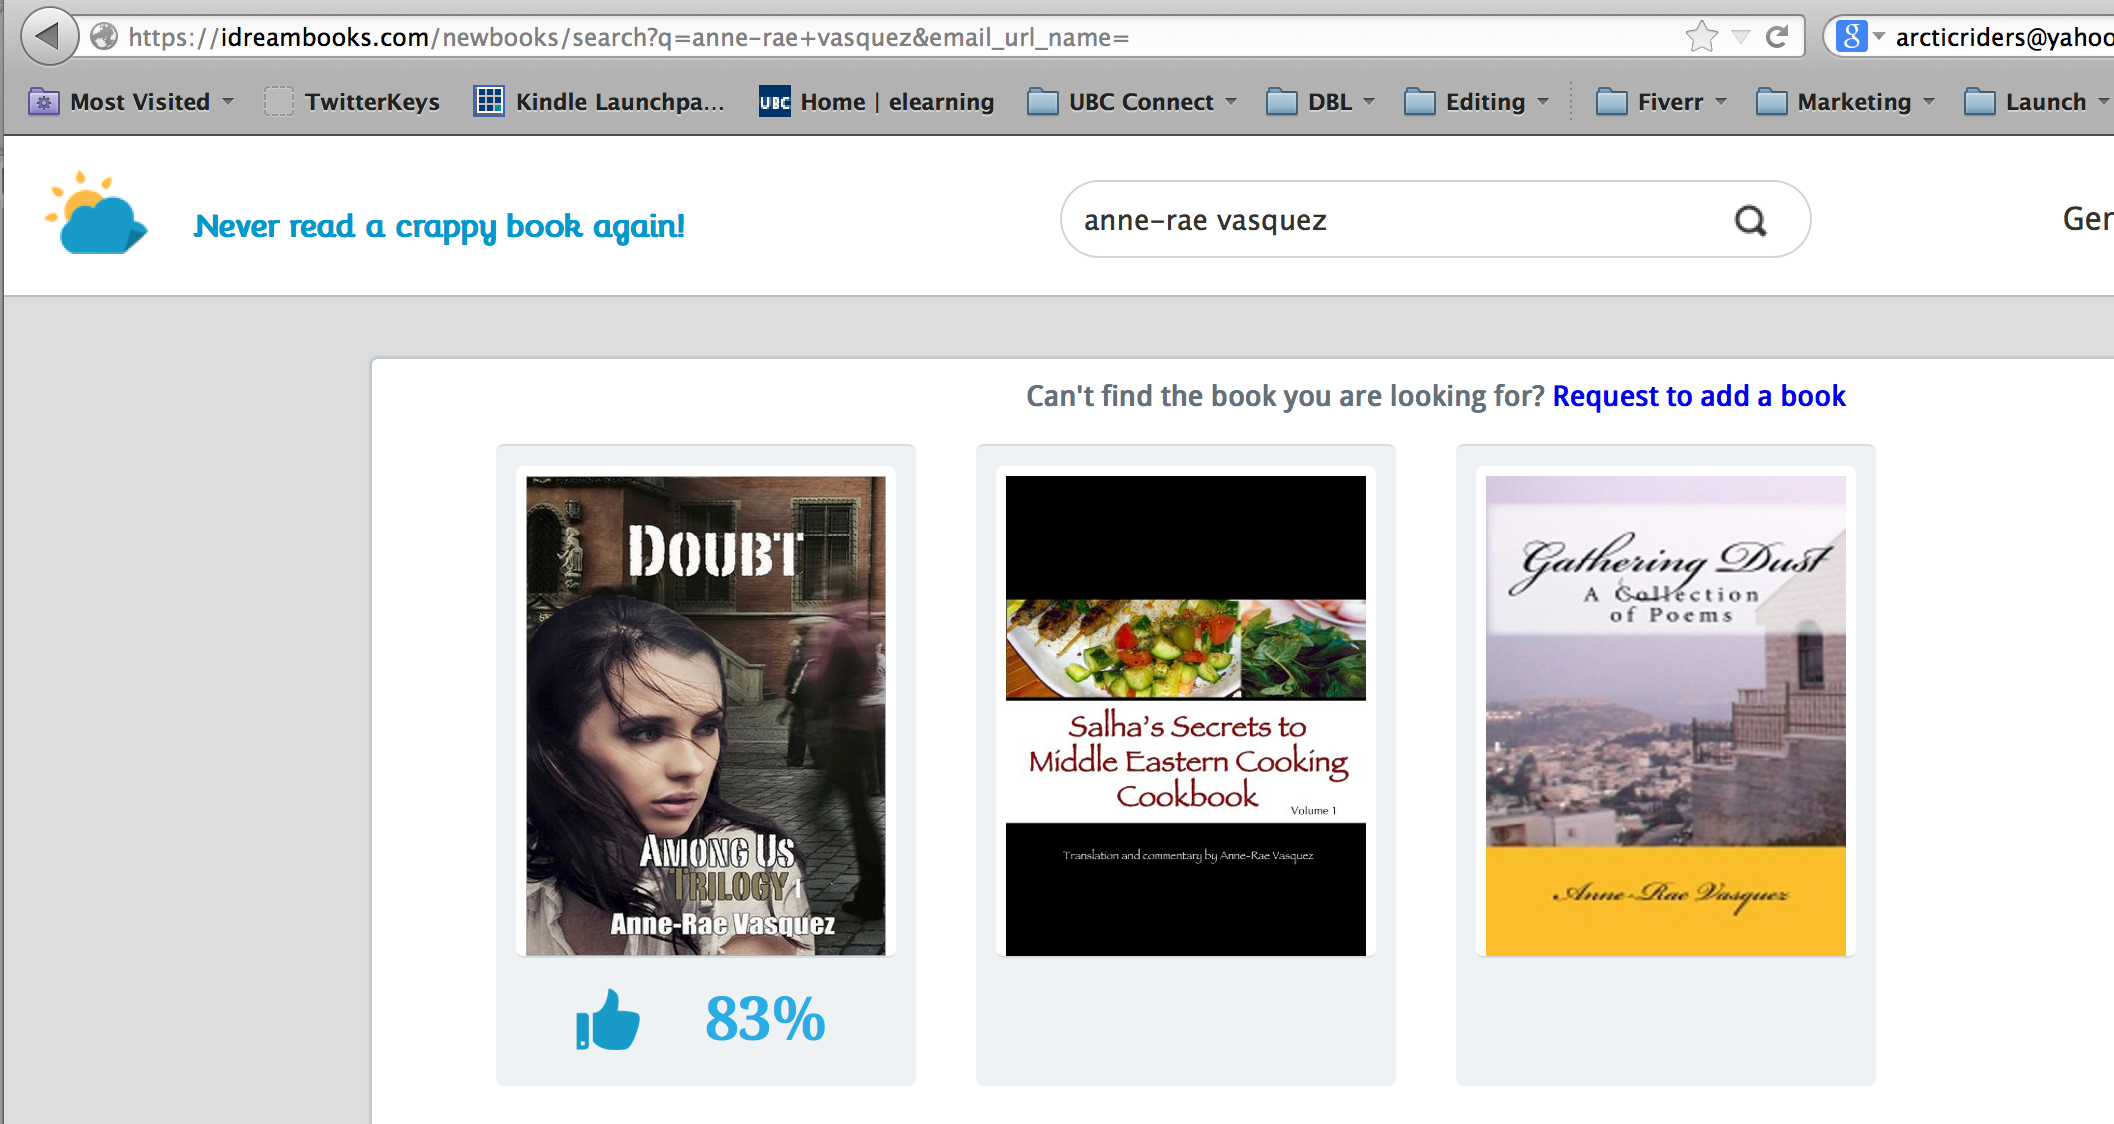 Doubt featured on iDreamBooks